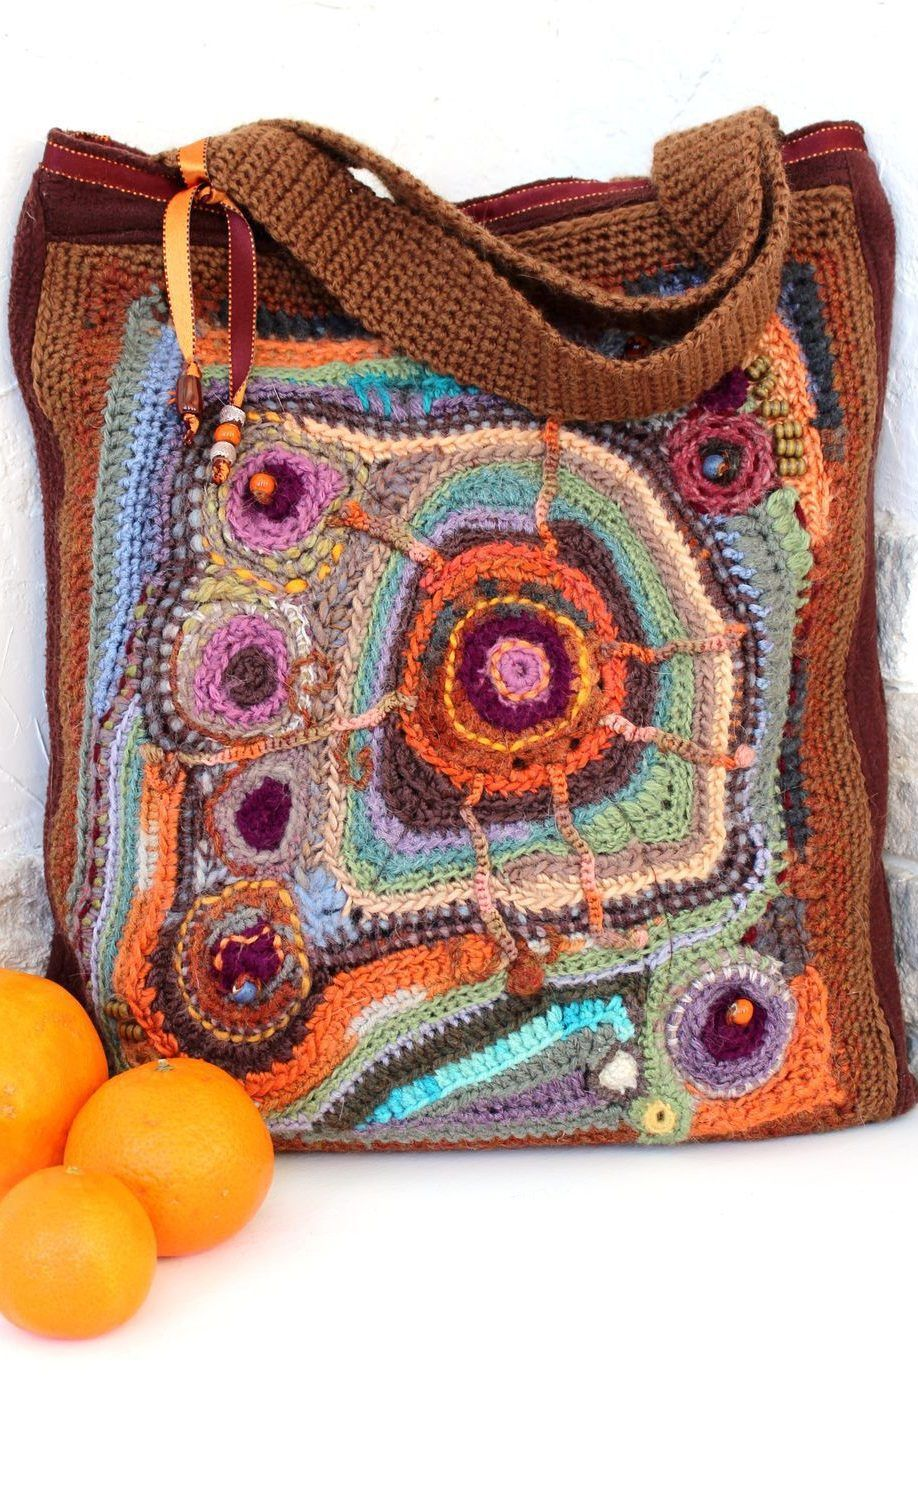 60+ Daily Useful and Cool Crochet Bag Pattern Ideas – Page 39 of 60